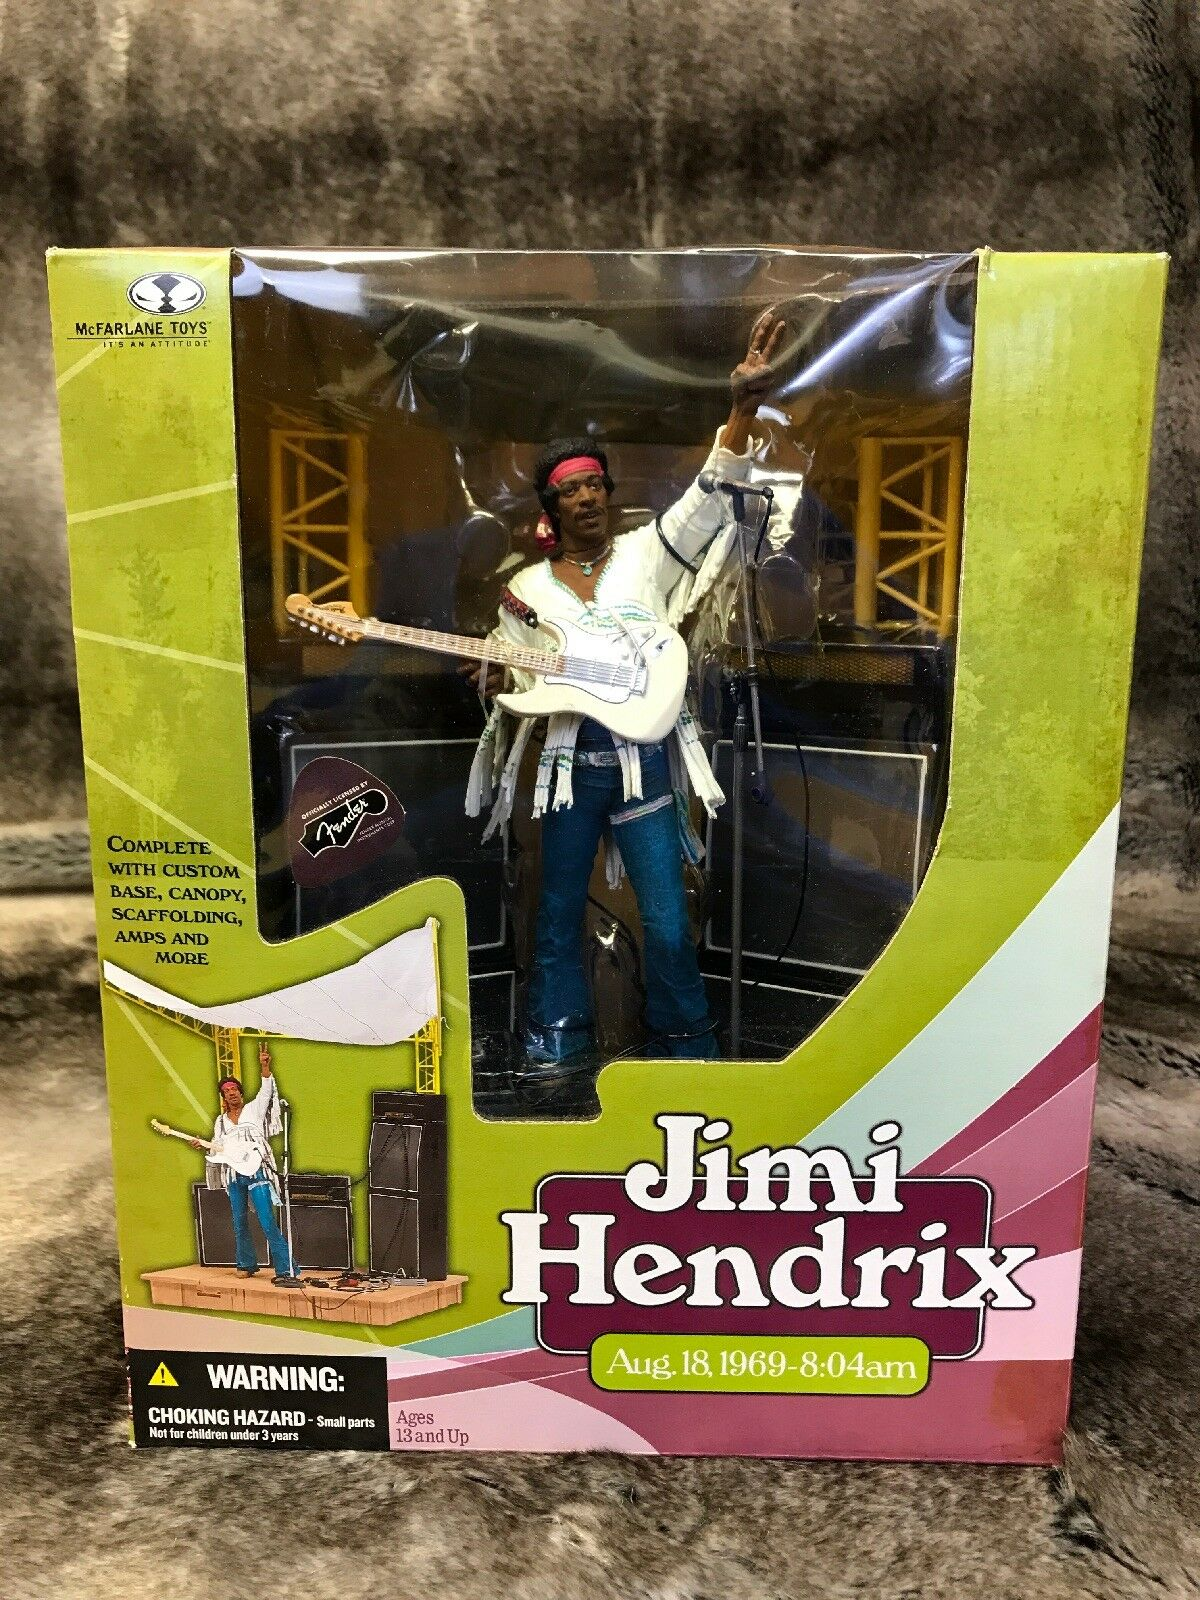 McFarlane Toys Jimi Hendrix Aug. 18 1969 - 8:04am Officially Licensed By Fender